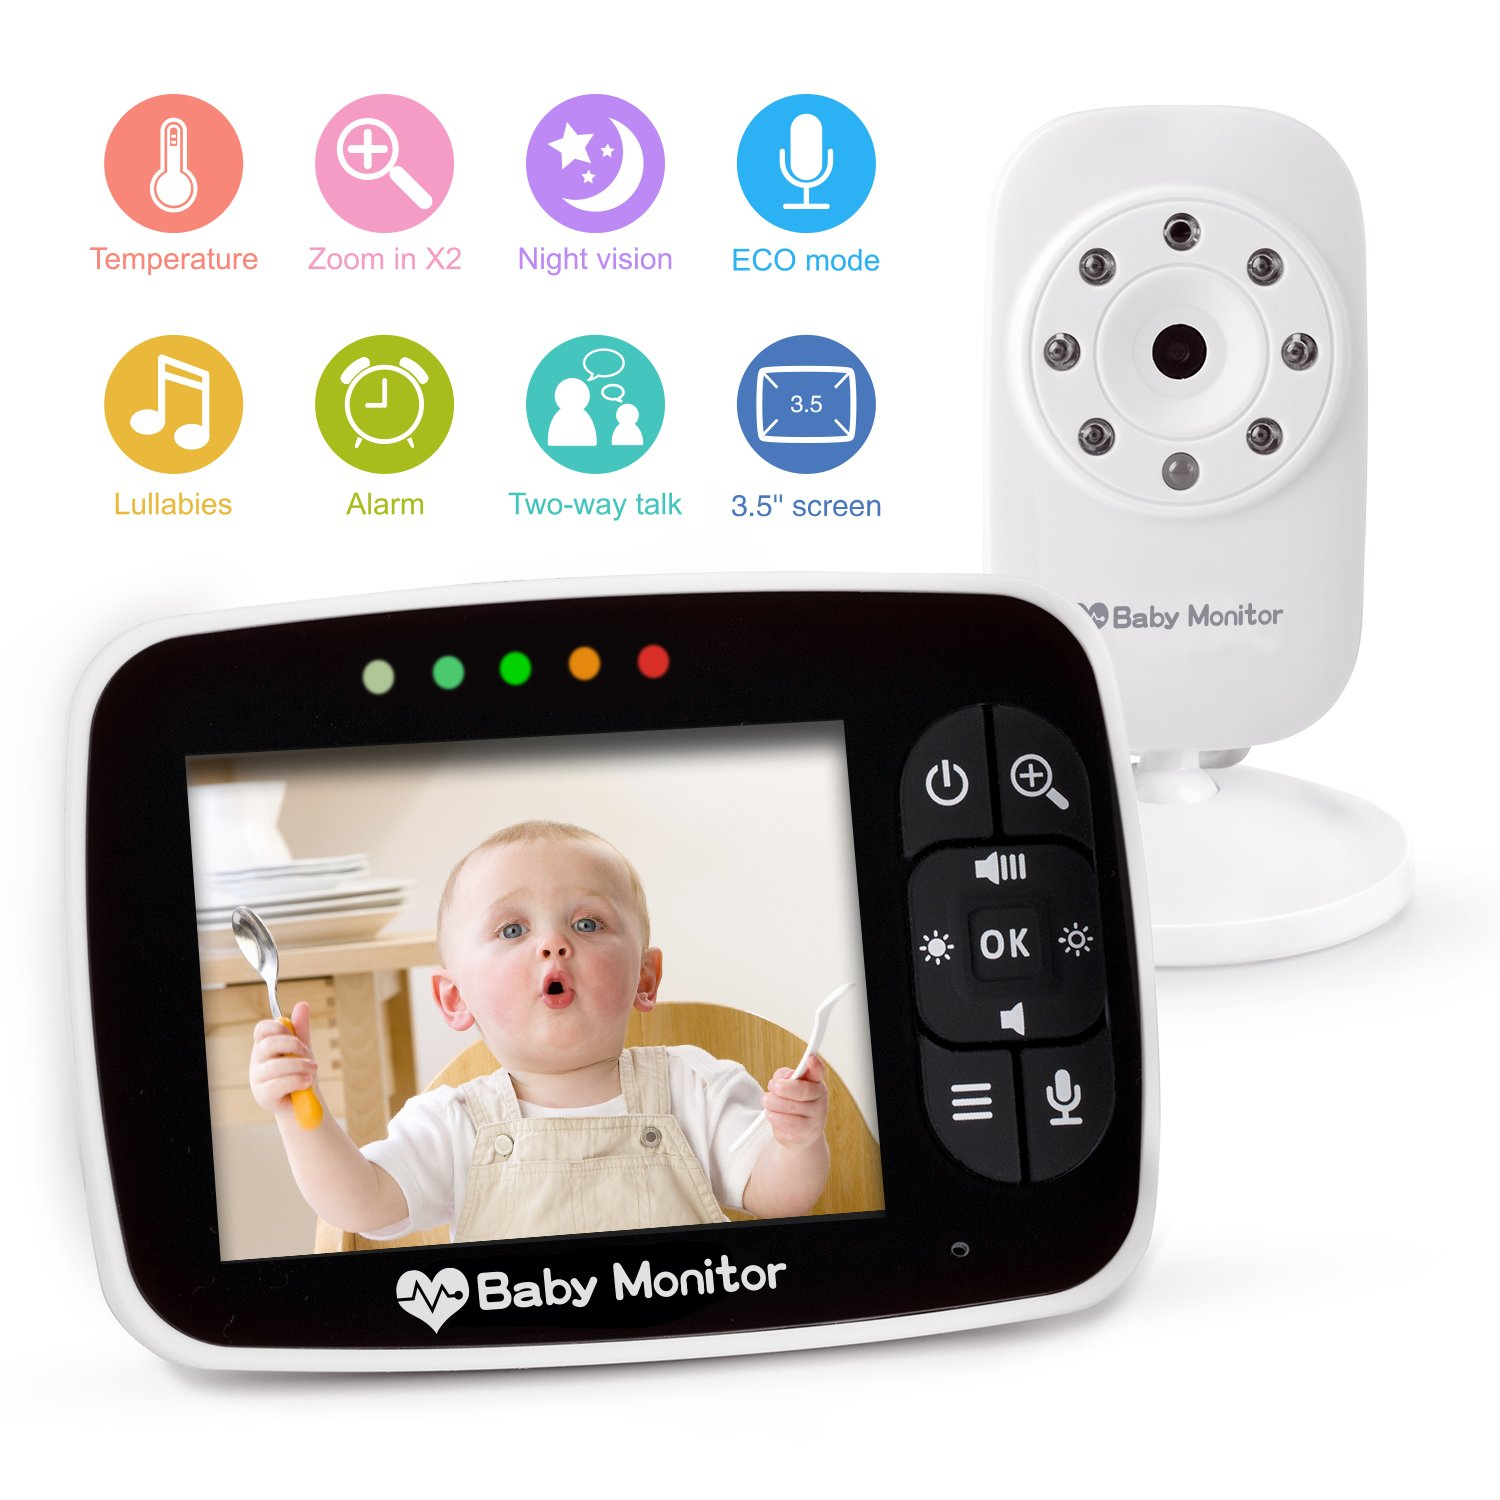 Video Baby Monitor 3.5 Large LCD Screen Display with Night Vision Camera, Two Way Talk Audio, Temperature Sensor, ECO Mode, Lullabies and Long Transmission Range, 2.4 GHz FHS Frequency